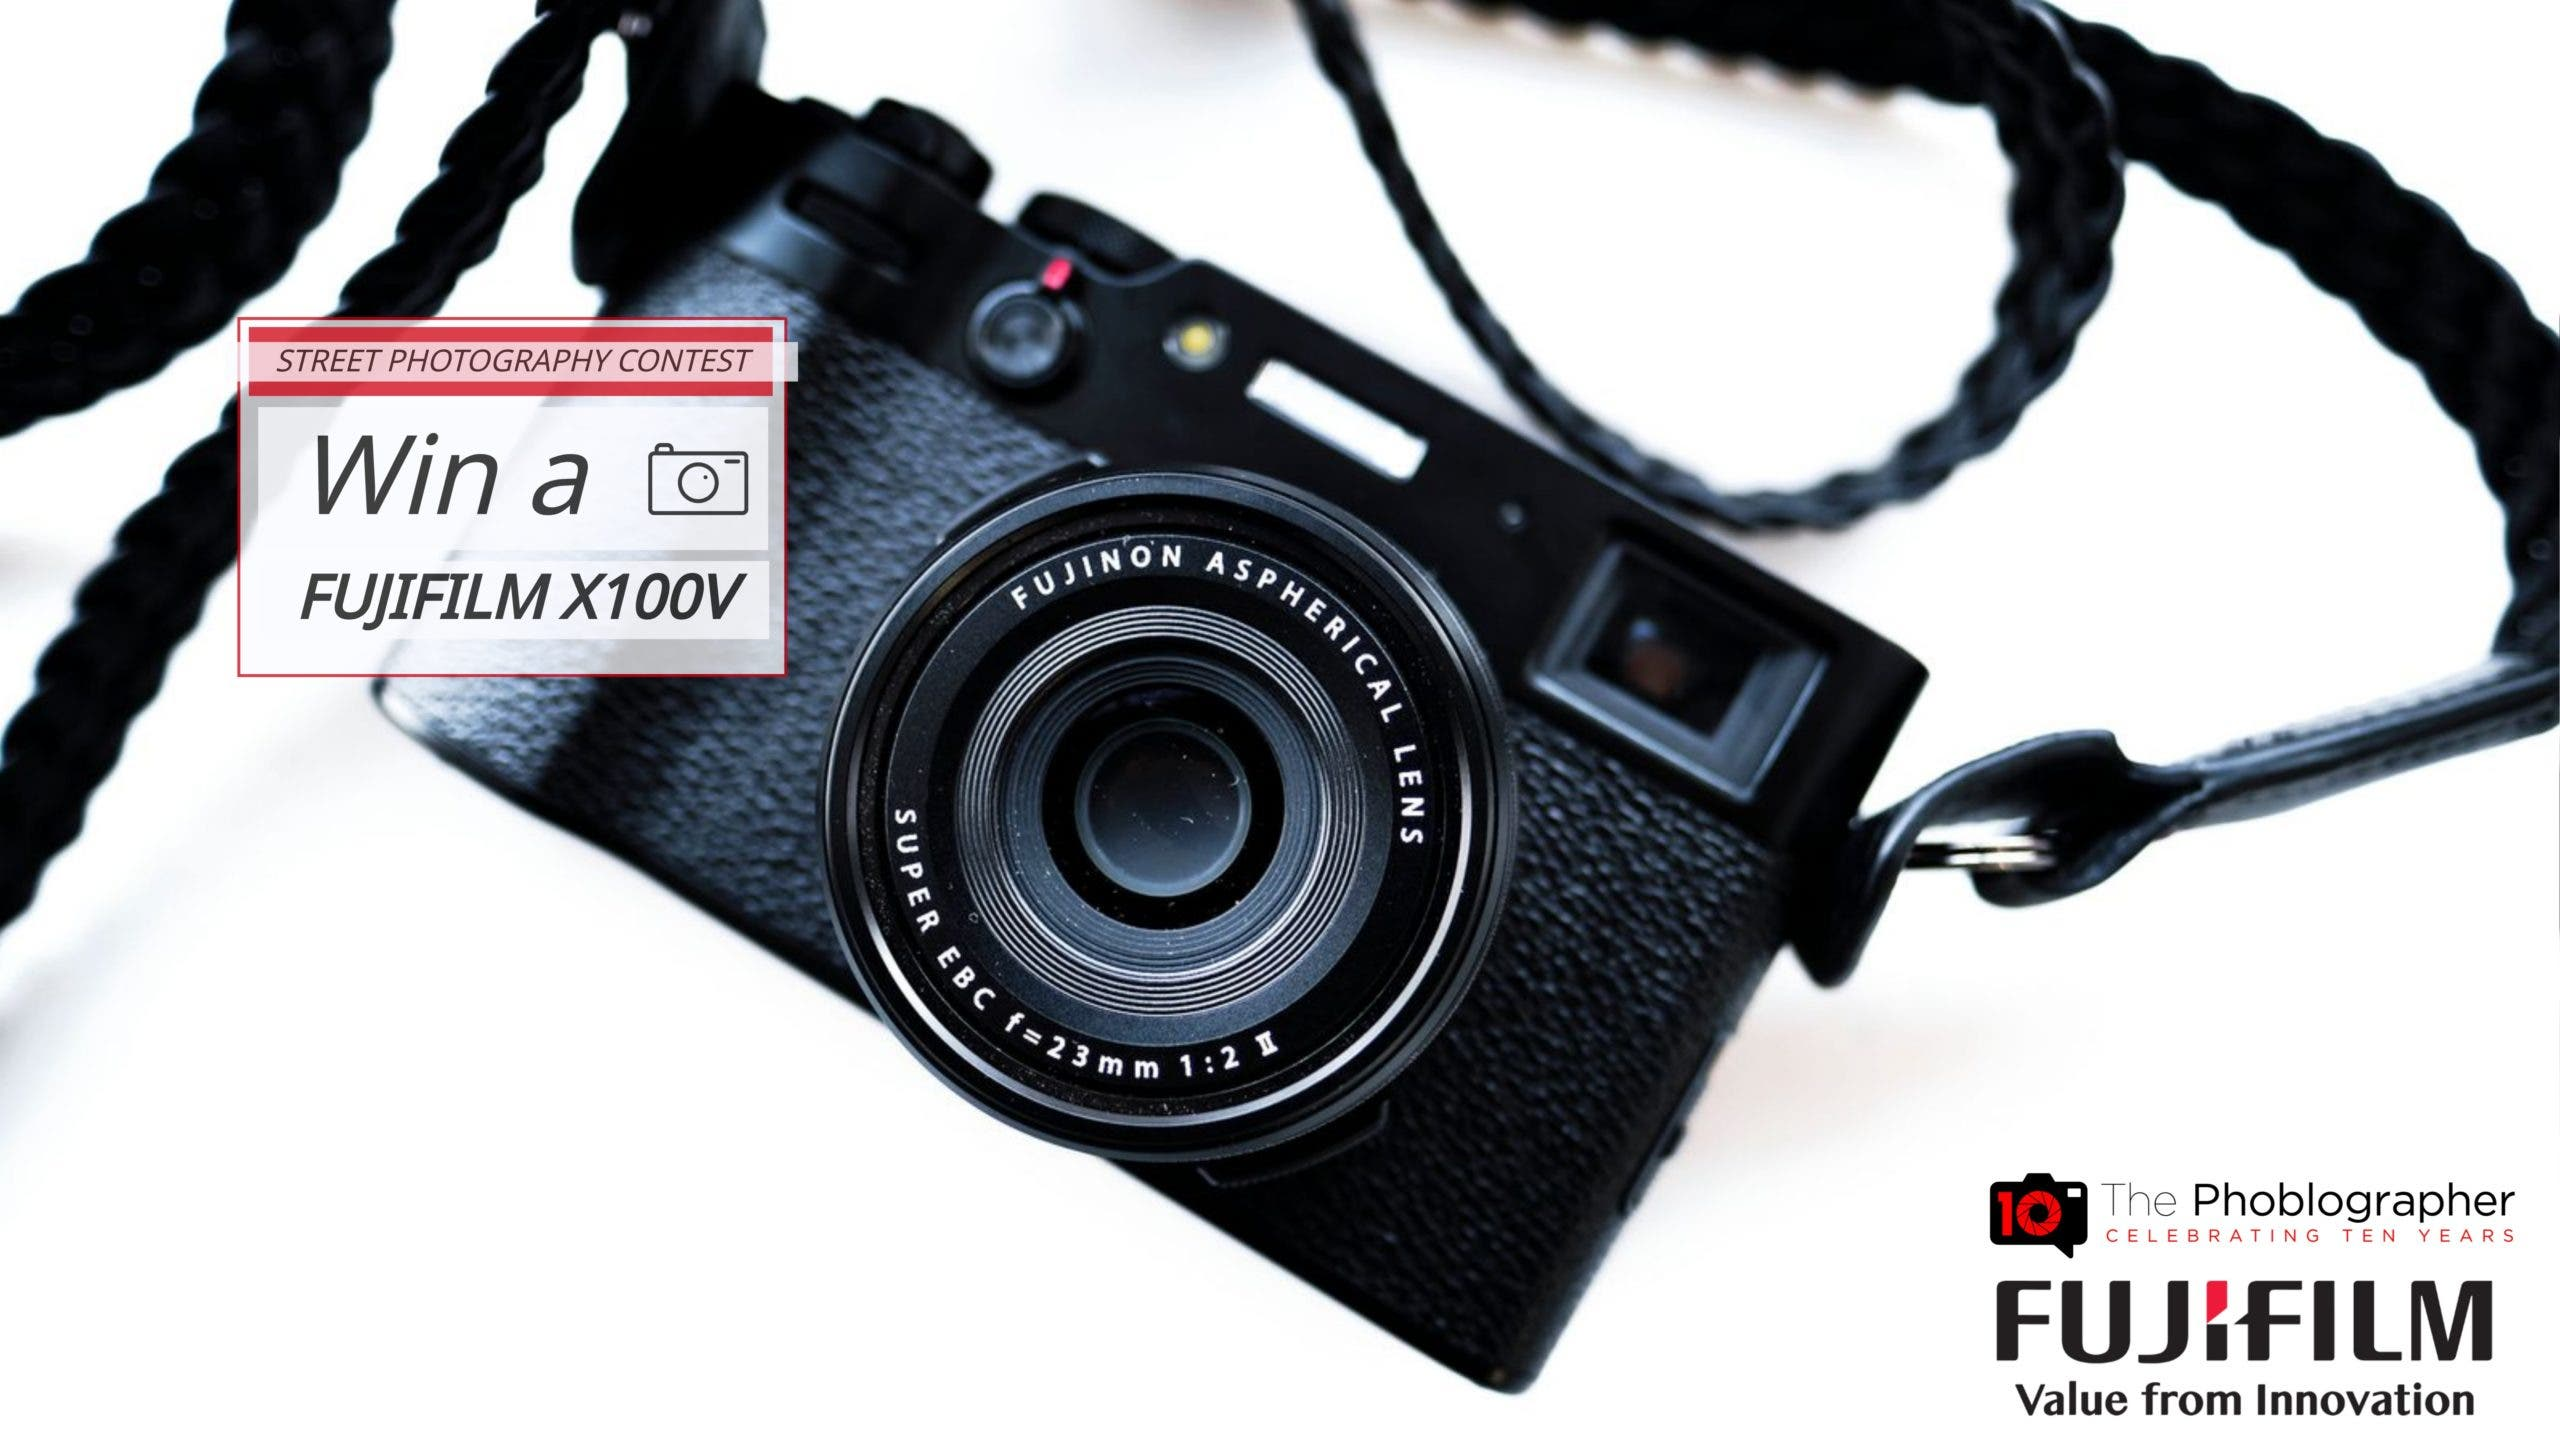 STREET PHOTOGRAPHERS! Enter to Win a Fujifilm X100V!